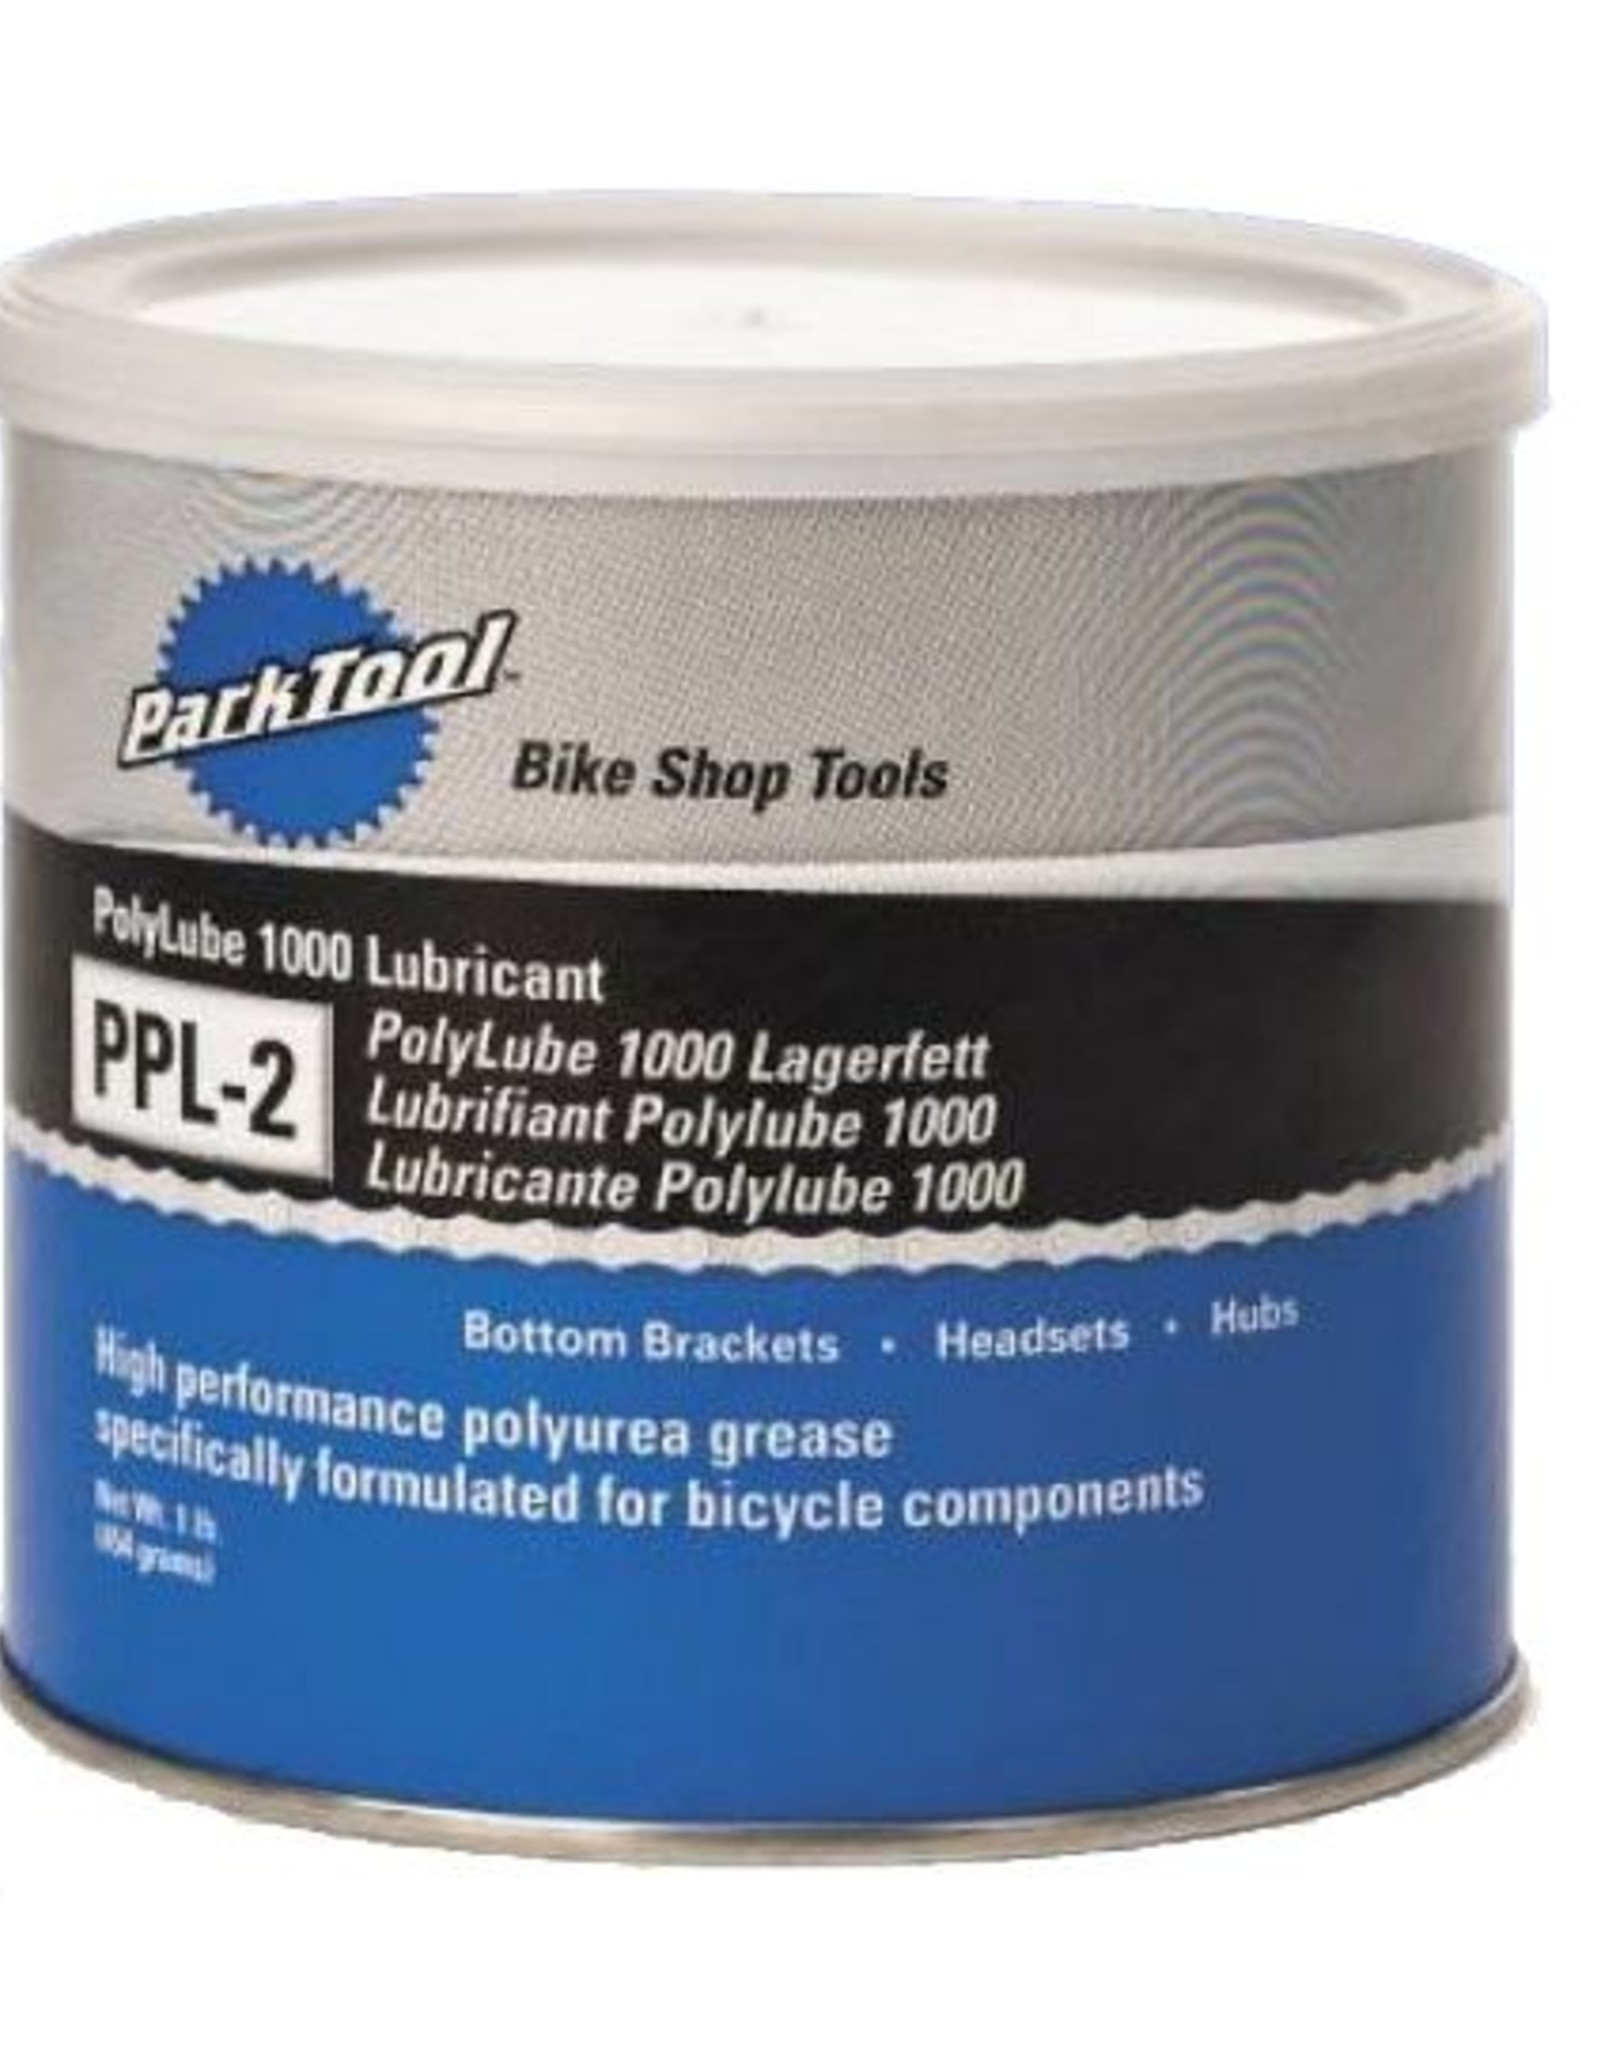 Park Tool Park Tool Poly lube 1000 Grease Tub, 16oz